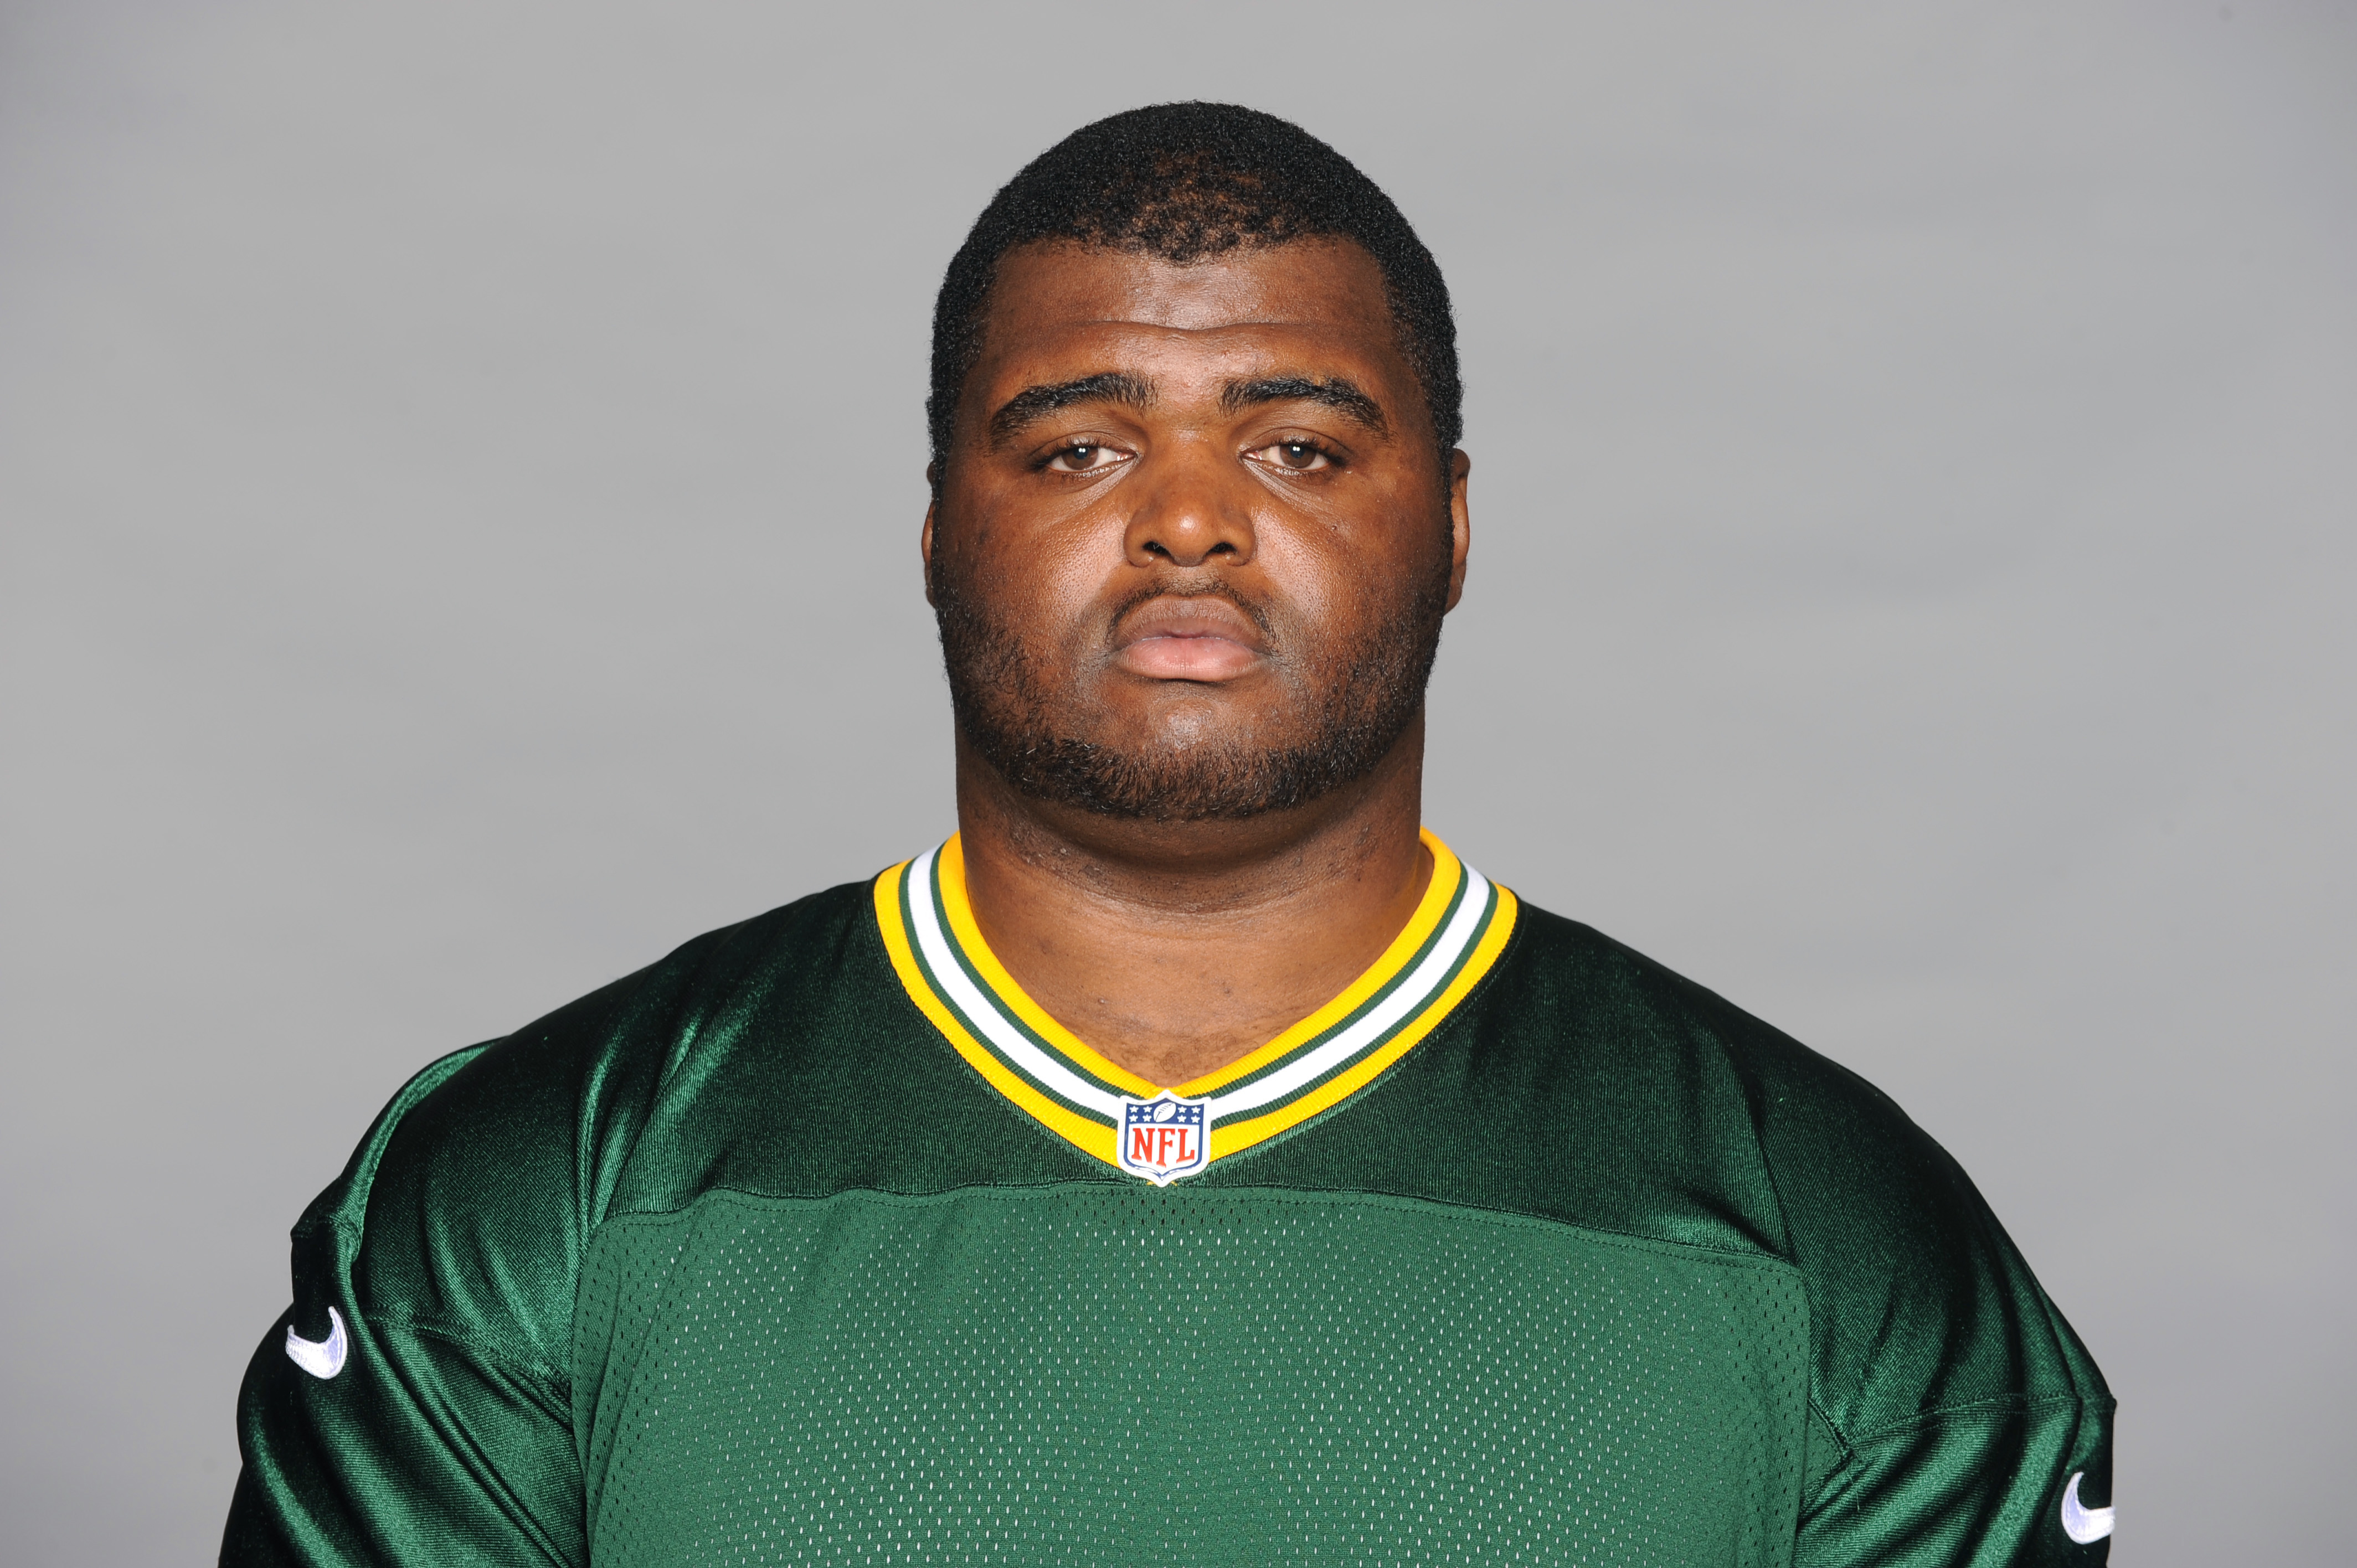 FILE - This is a 2015 file photo showing B.J. Raji of the Green Bay Packers NFL football team.  Defensive tackle B.J. Raji says he is taking a hiatus from the NFL and will not play in 2016 following seven seasons with the Green Bay Packers. Raji said Mond